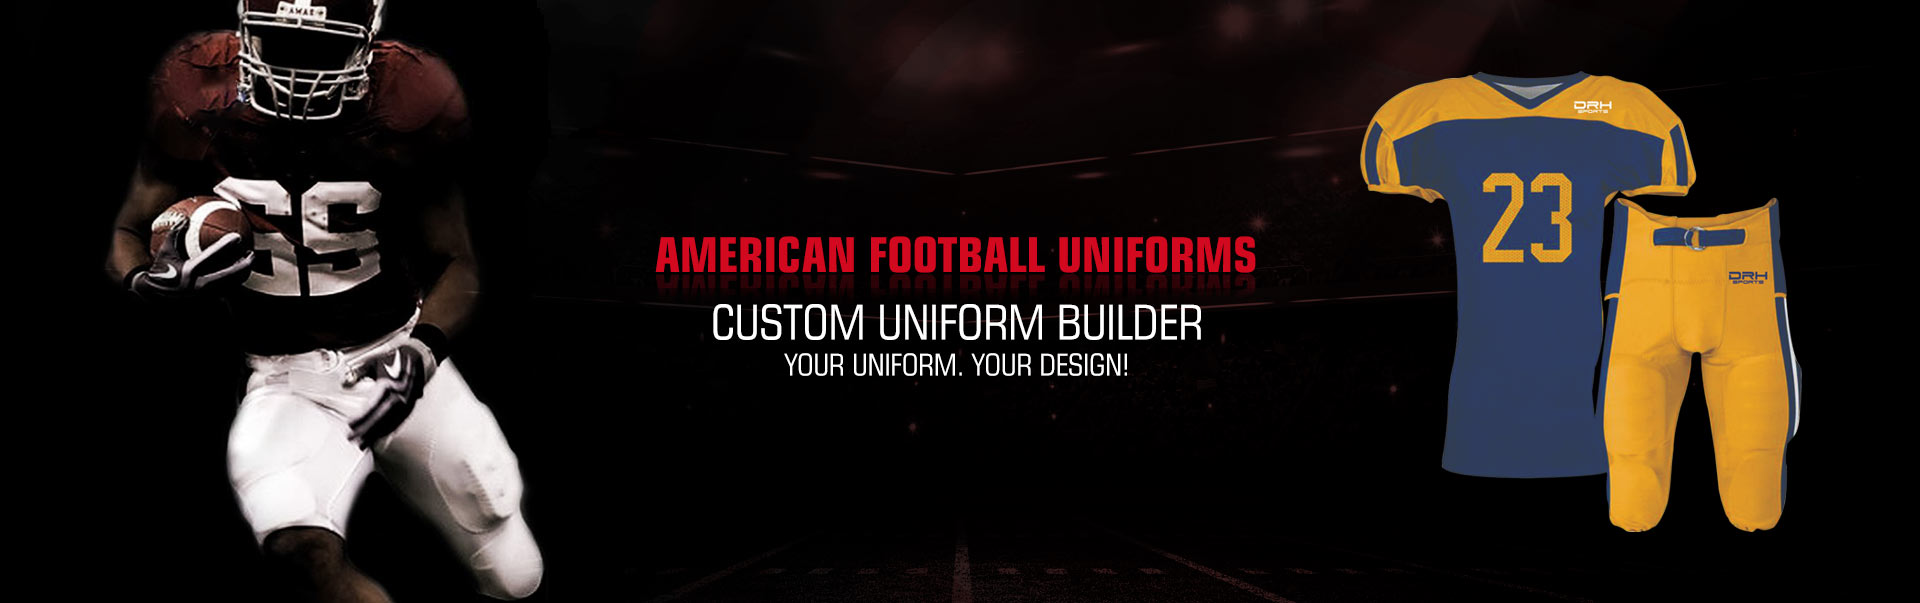 American Football Uniform Wholesaler, Suppliers in Trieste